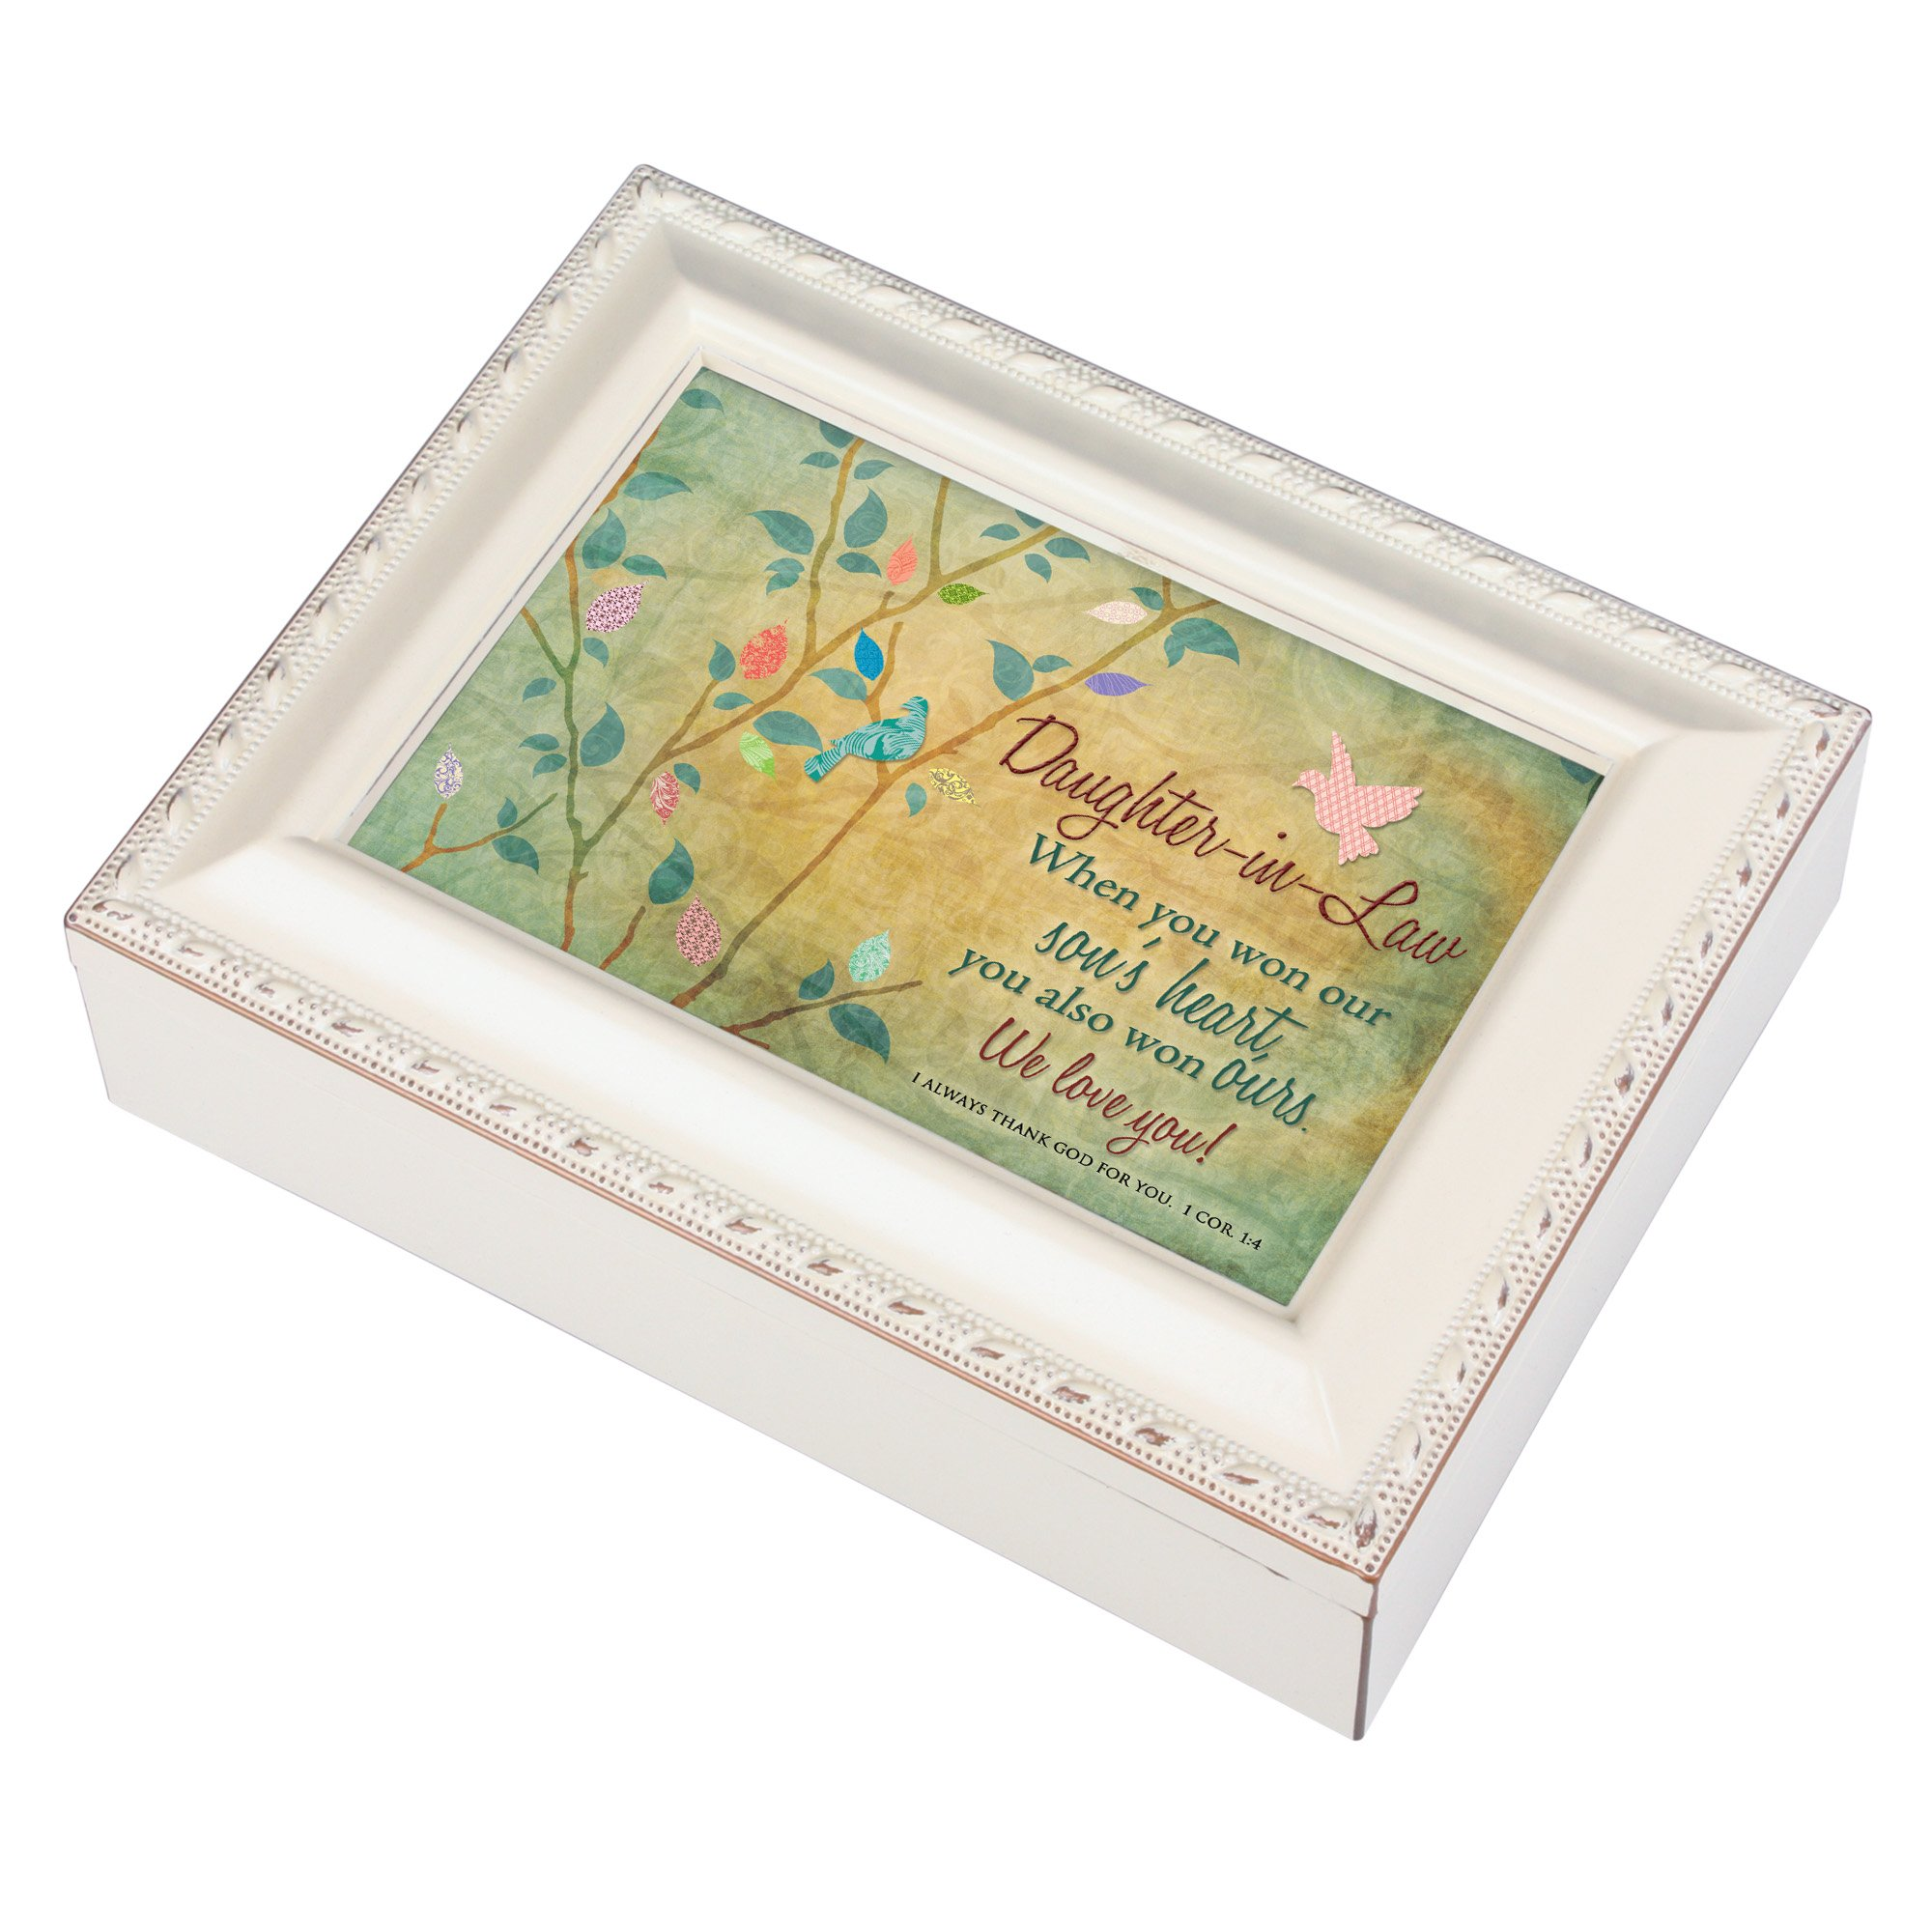 Cottage Garden Daughter-in-Law Won Our Hearts Ivory Rope Trim Jewelry Music Box Plays Ave Maria